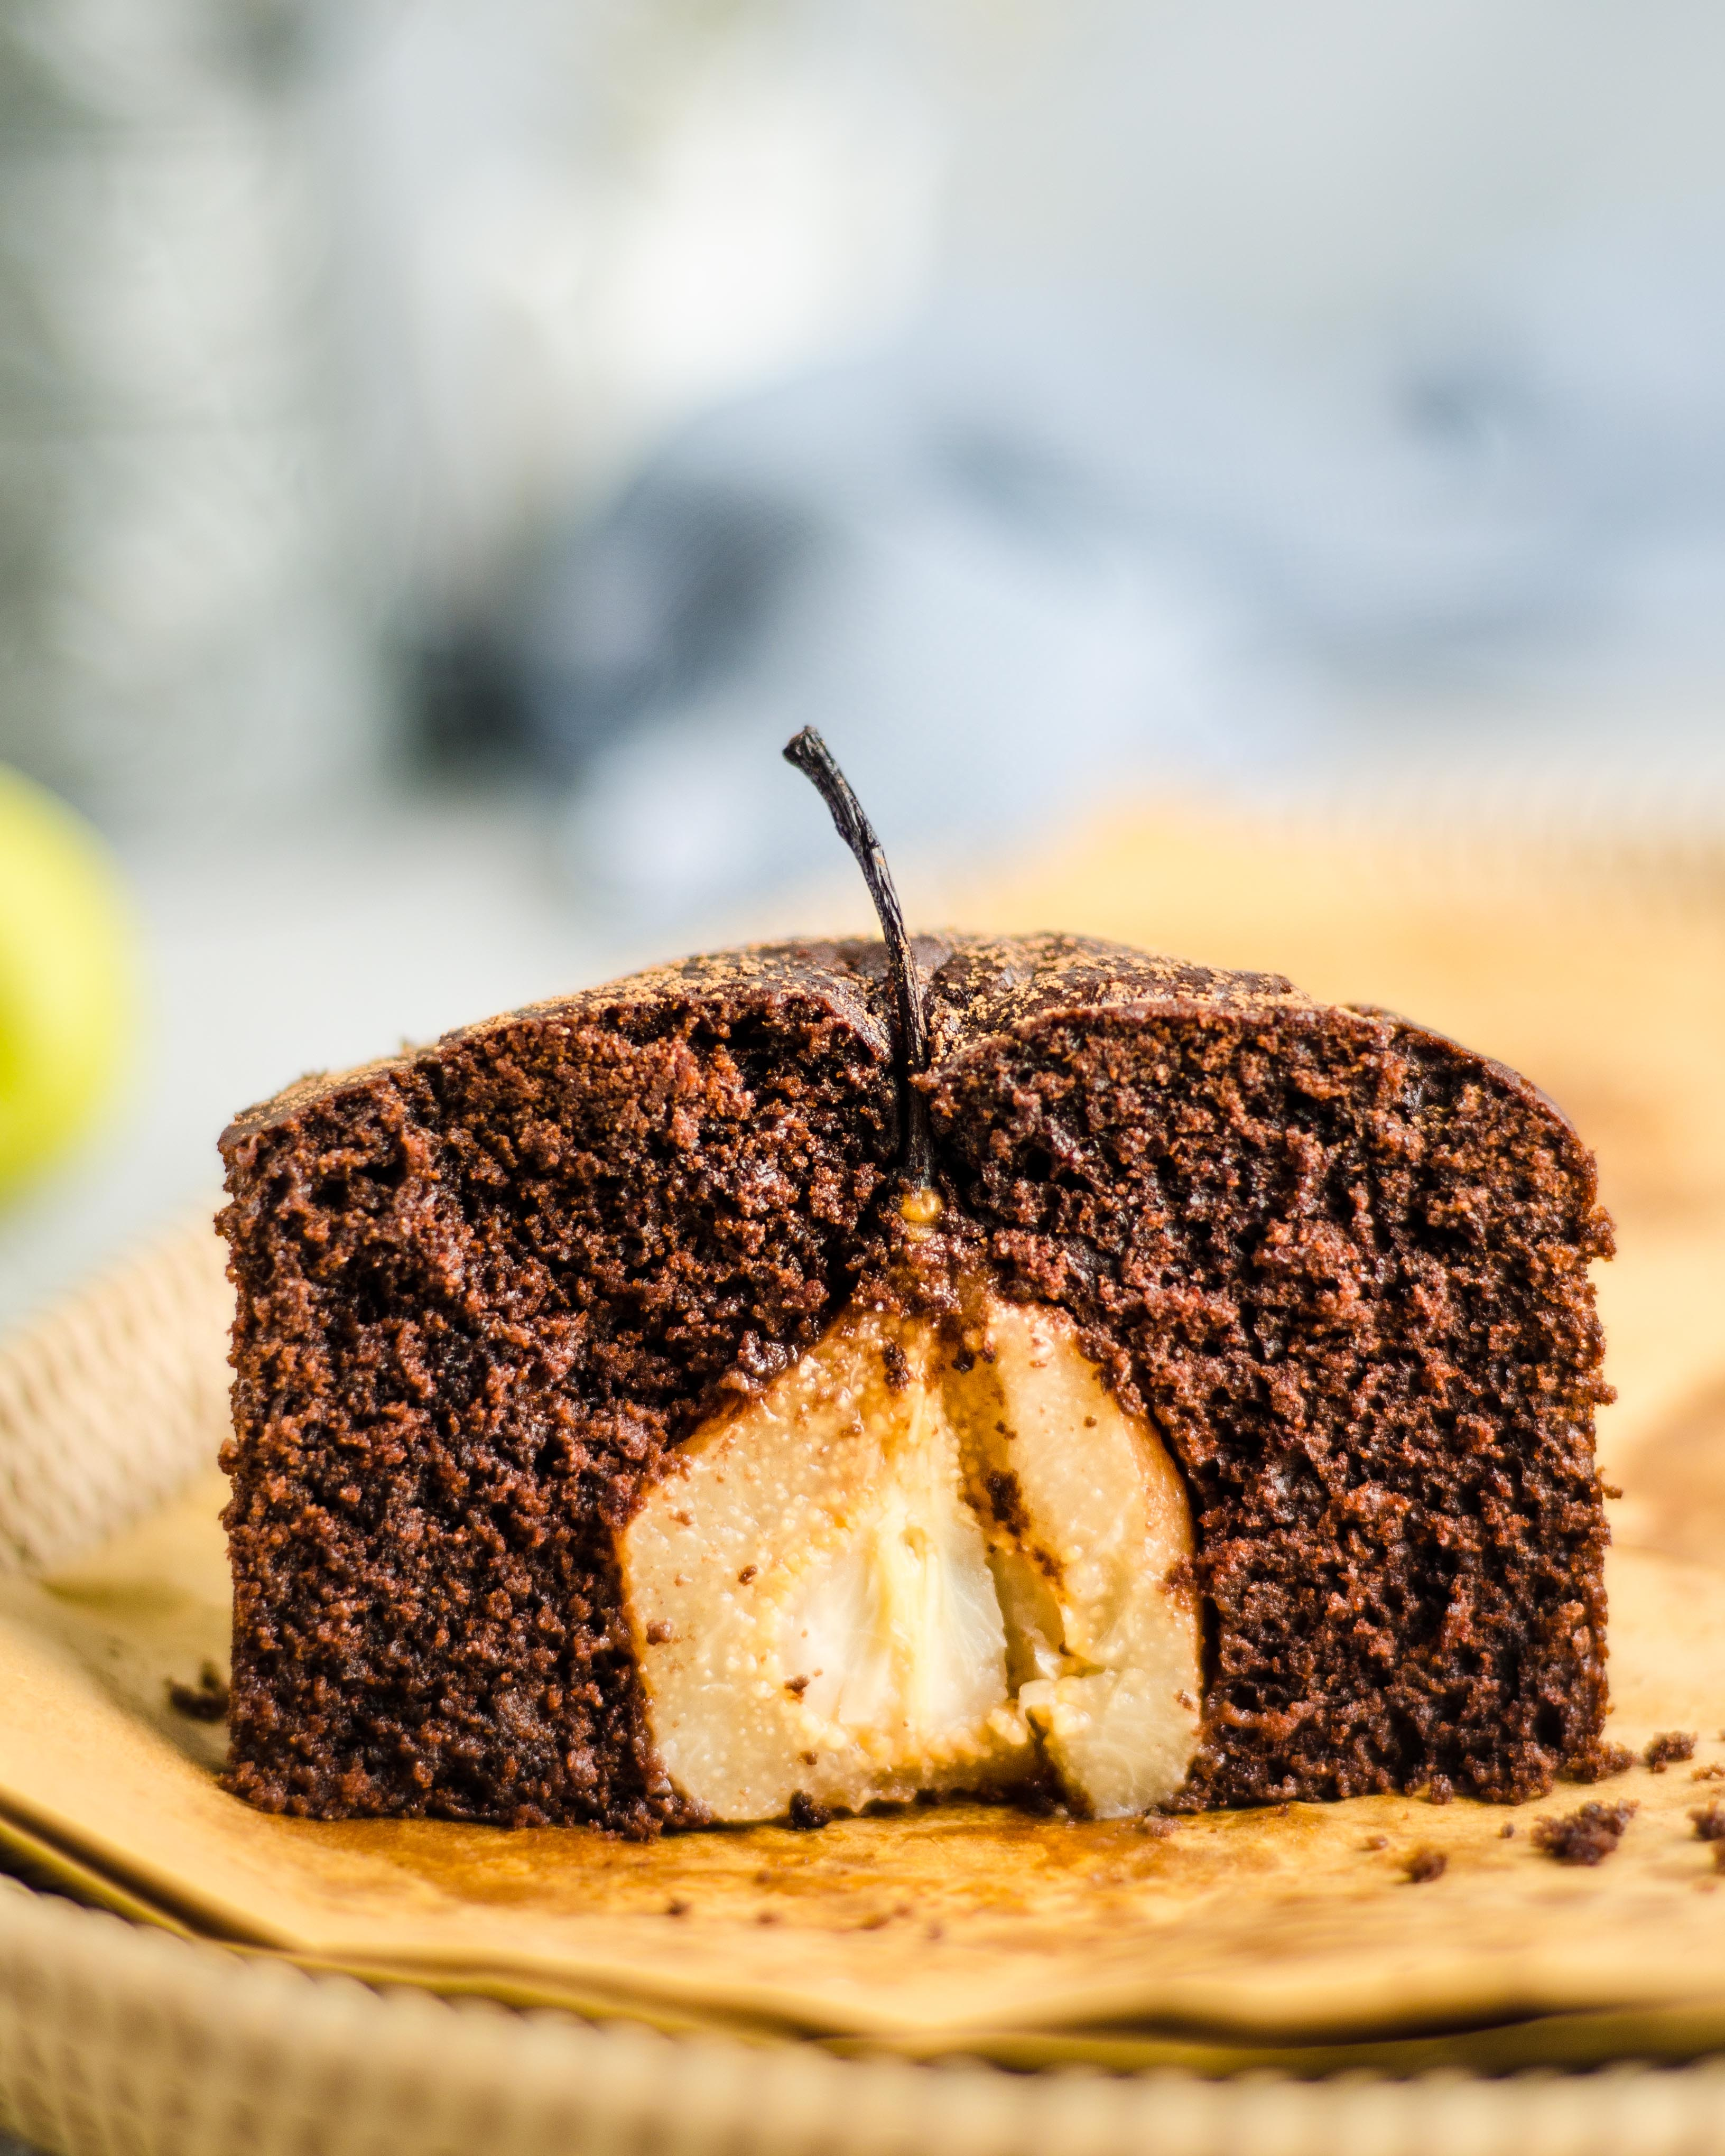 Masala Chocolate pear cake